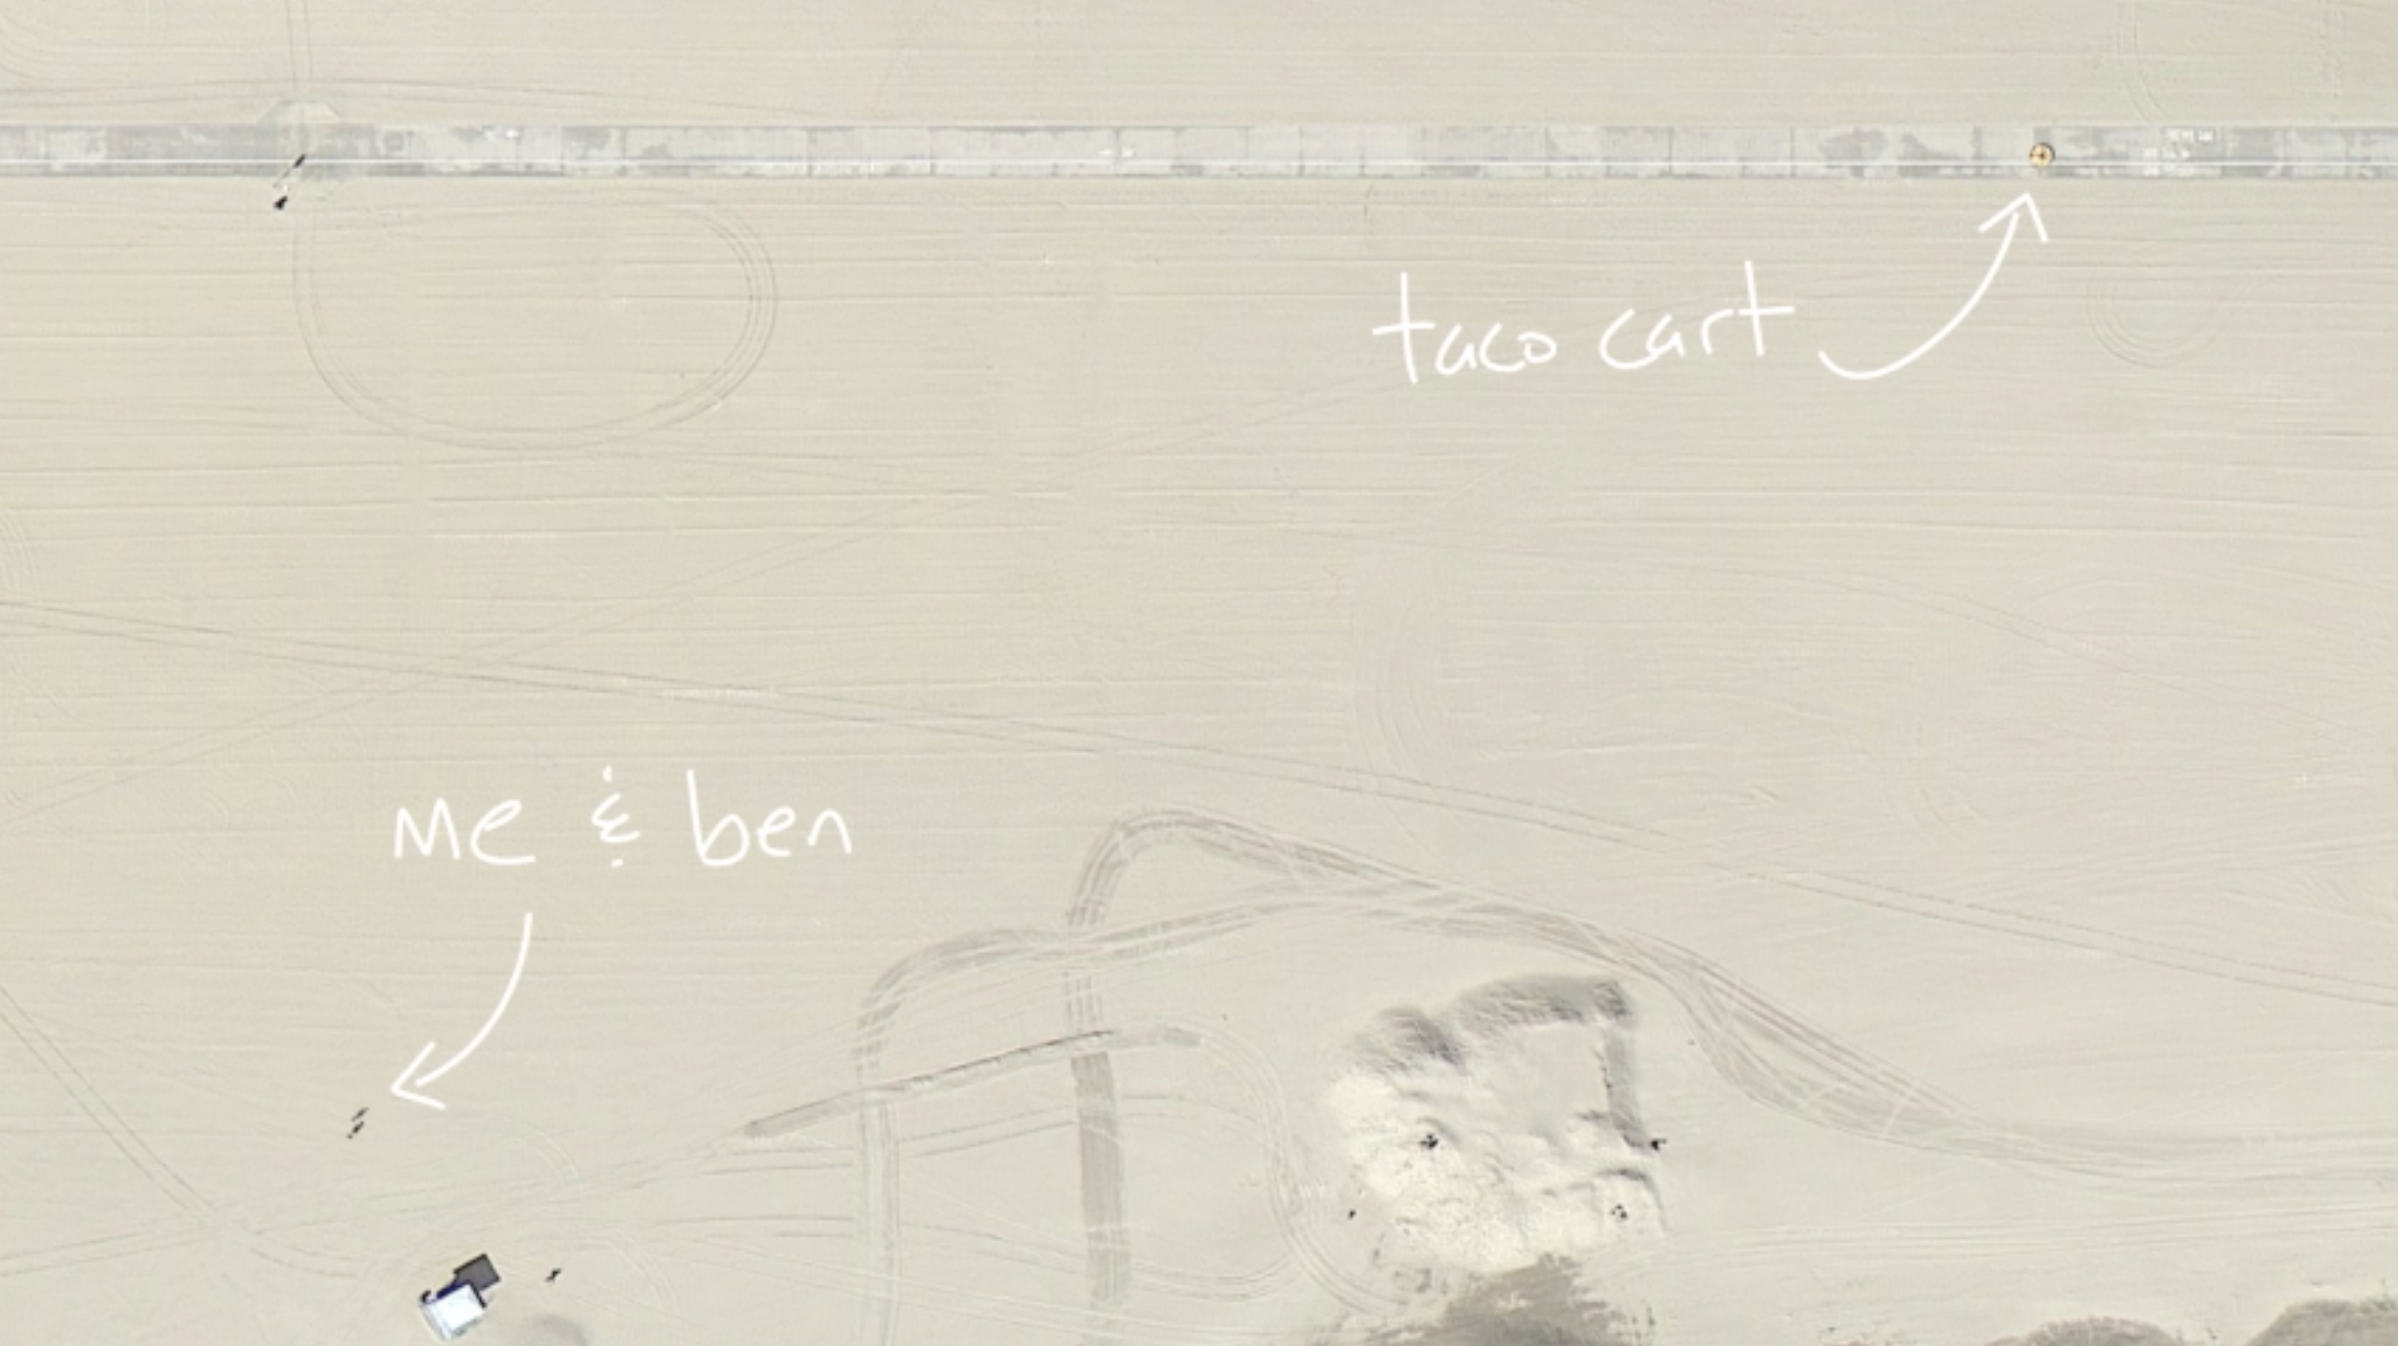 Screenshot of introductory image from the Taco Cart task. An overhead photo of a beach with the Taco Cart located on a boardwalk, and Dan and Ben on the beach near the water